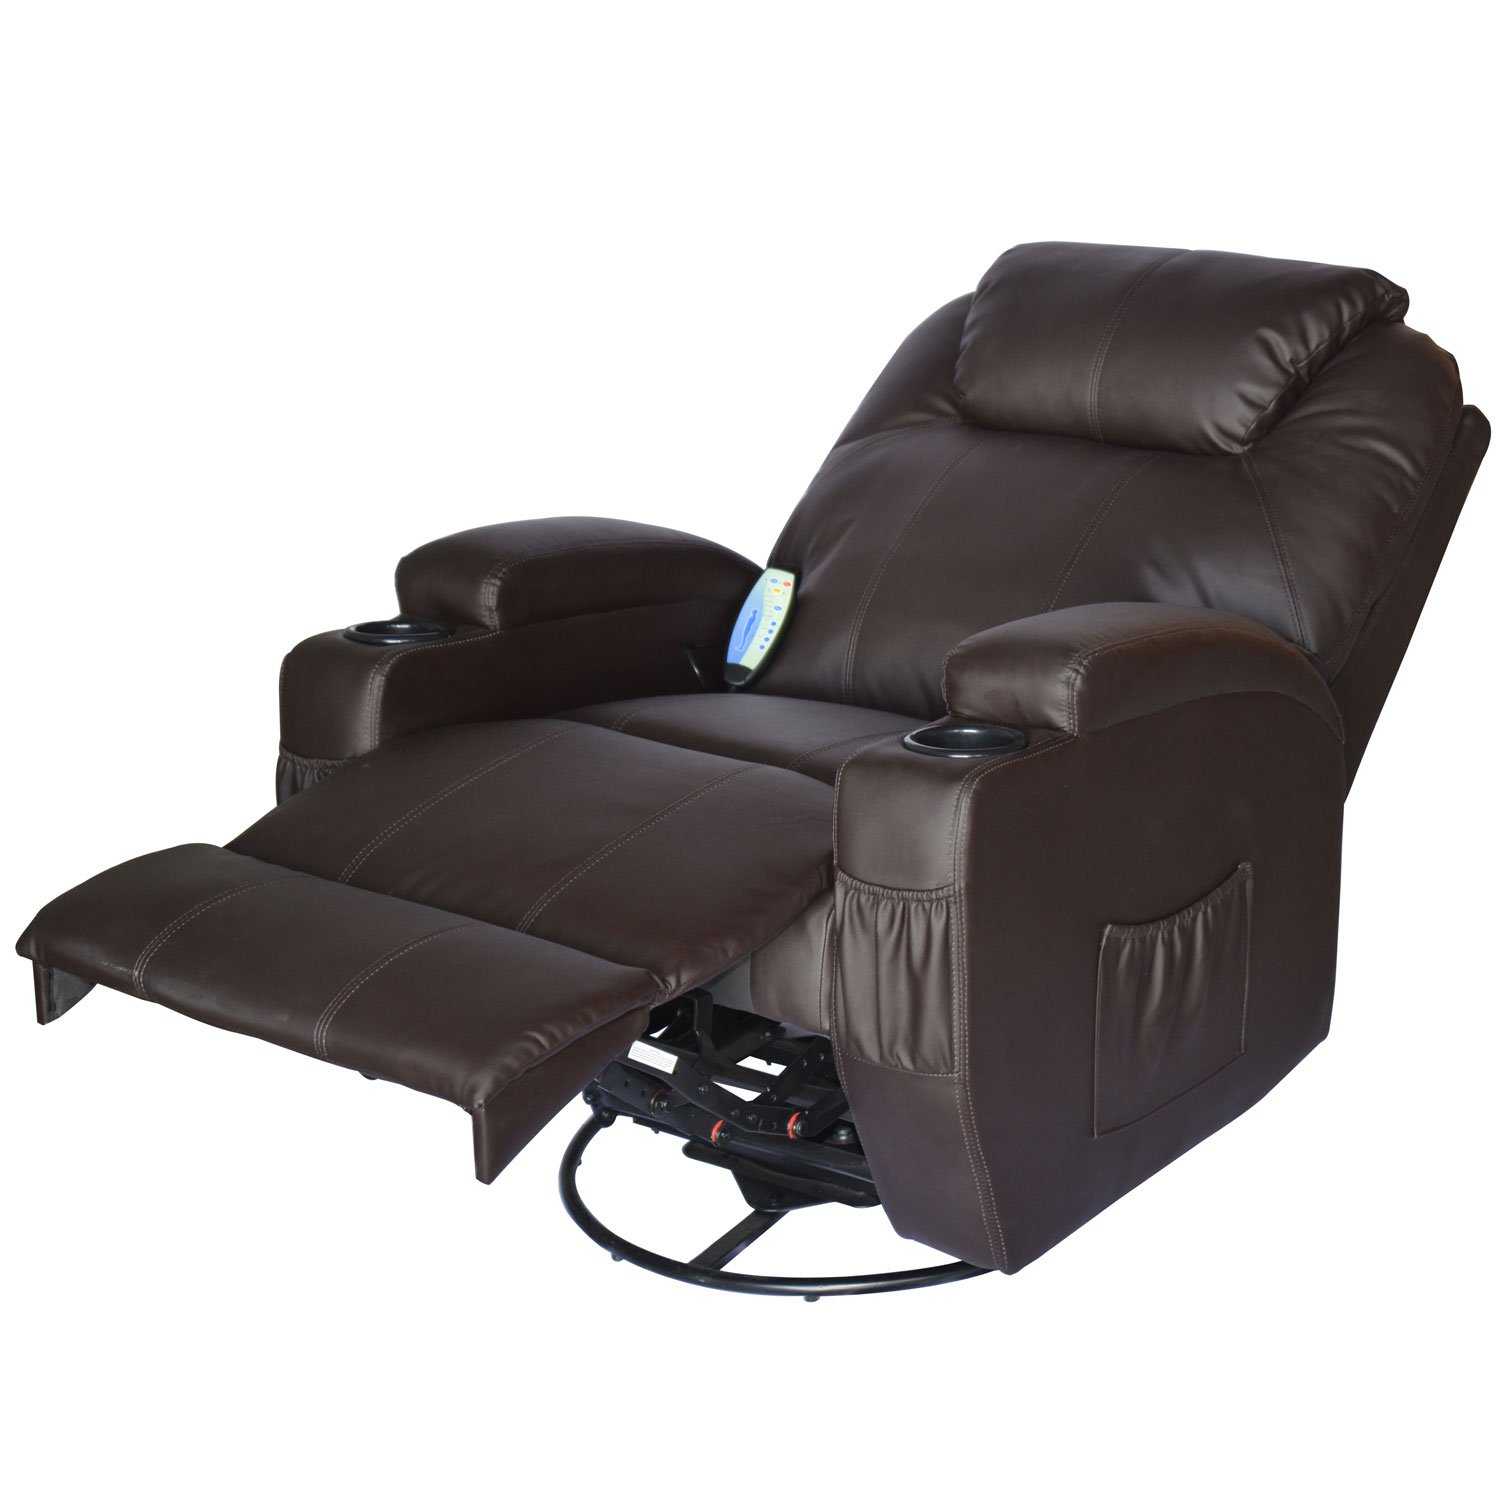 with chair massage amazon heat walmart recliner chairs